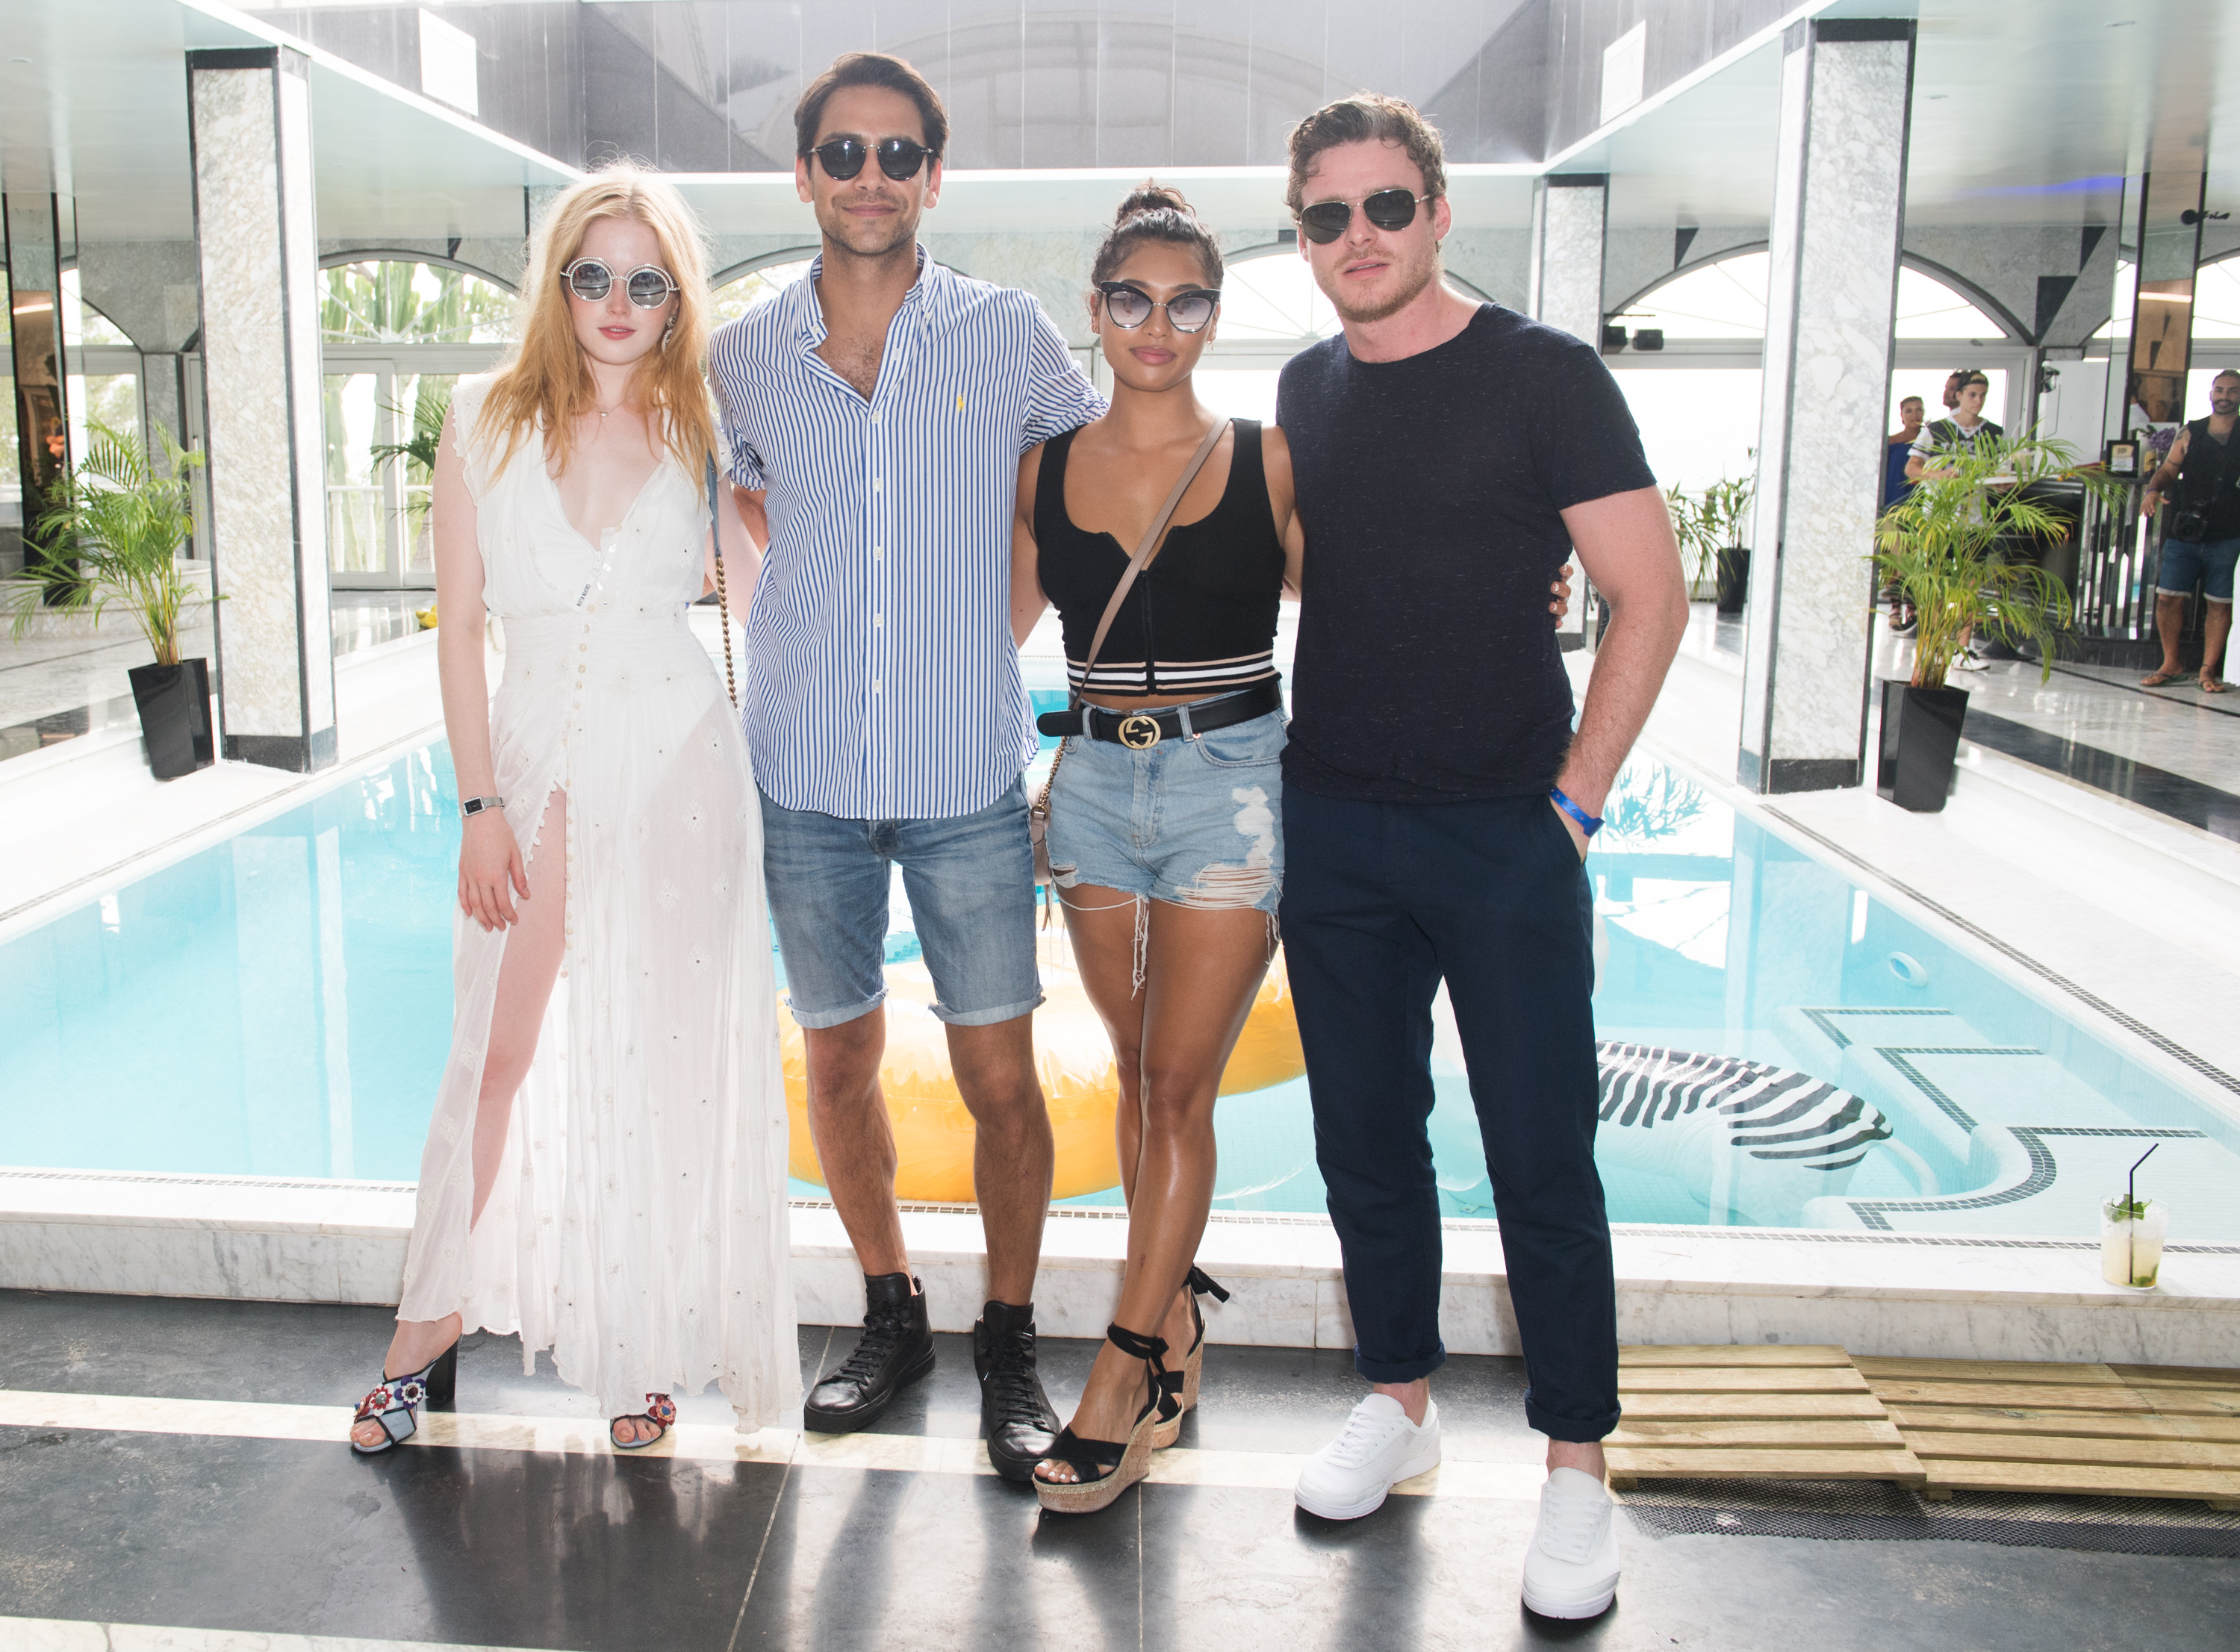 From left: Ellie Bamner, Luke Pasqualino, Vanessa White and Richard Madden attend the Ibiza pool party.